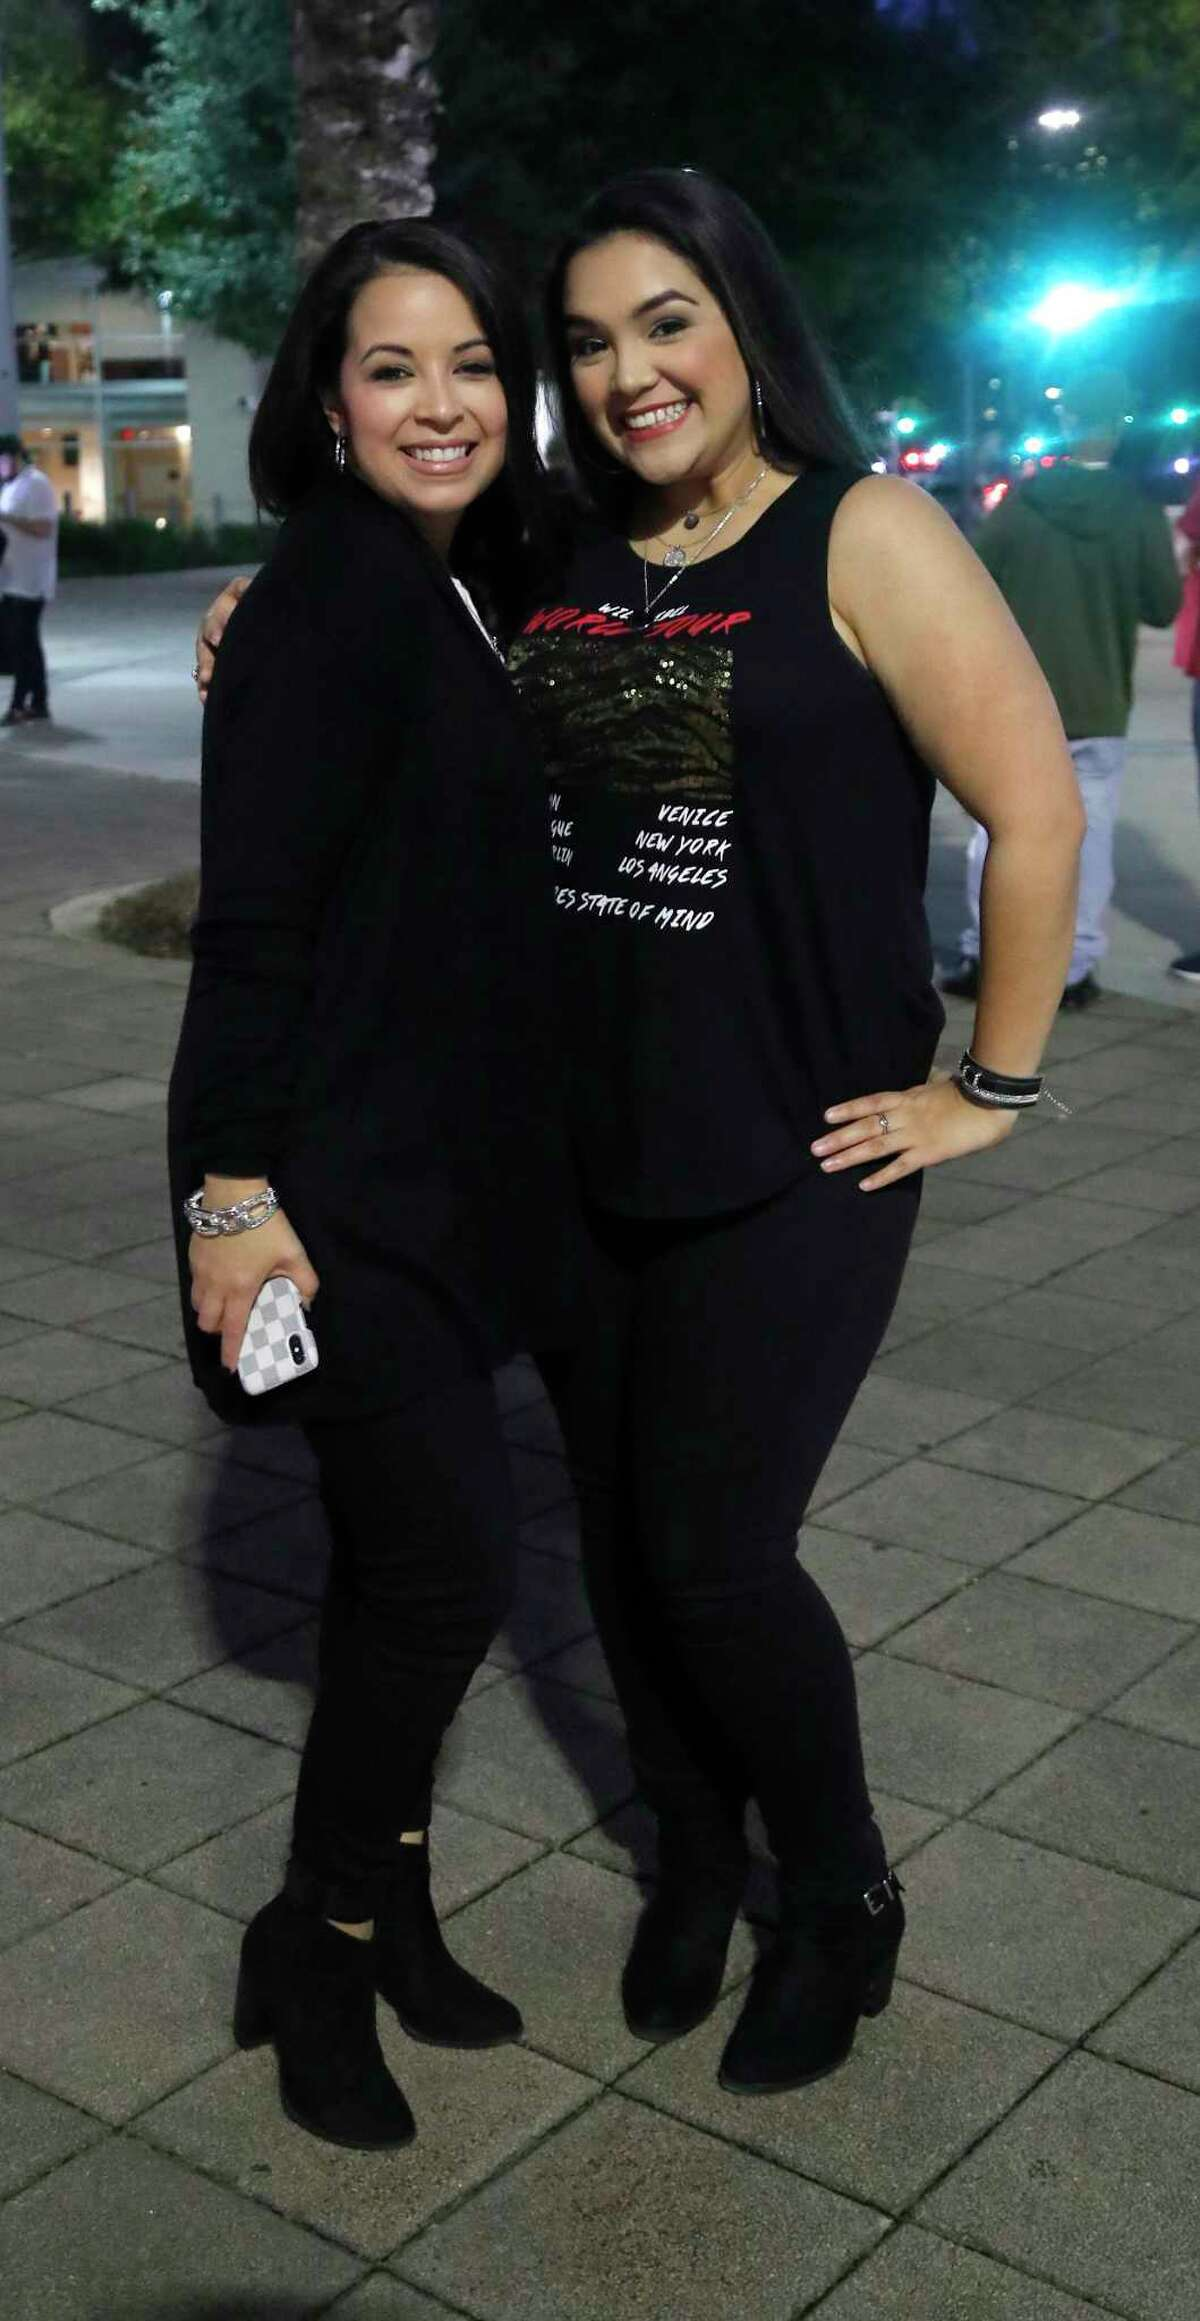 Fans line up before the Fleetwood Mac concert at the Toyota Center, Tuesday, Feb. 5, 2019, in Houston.